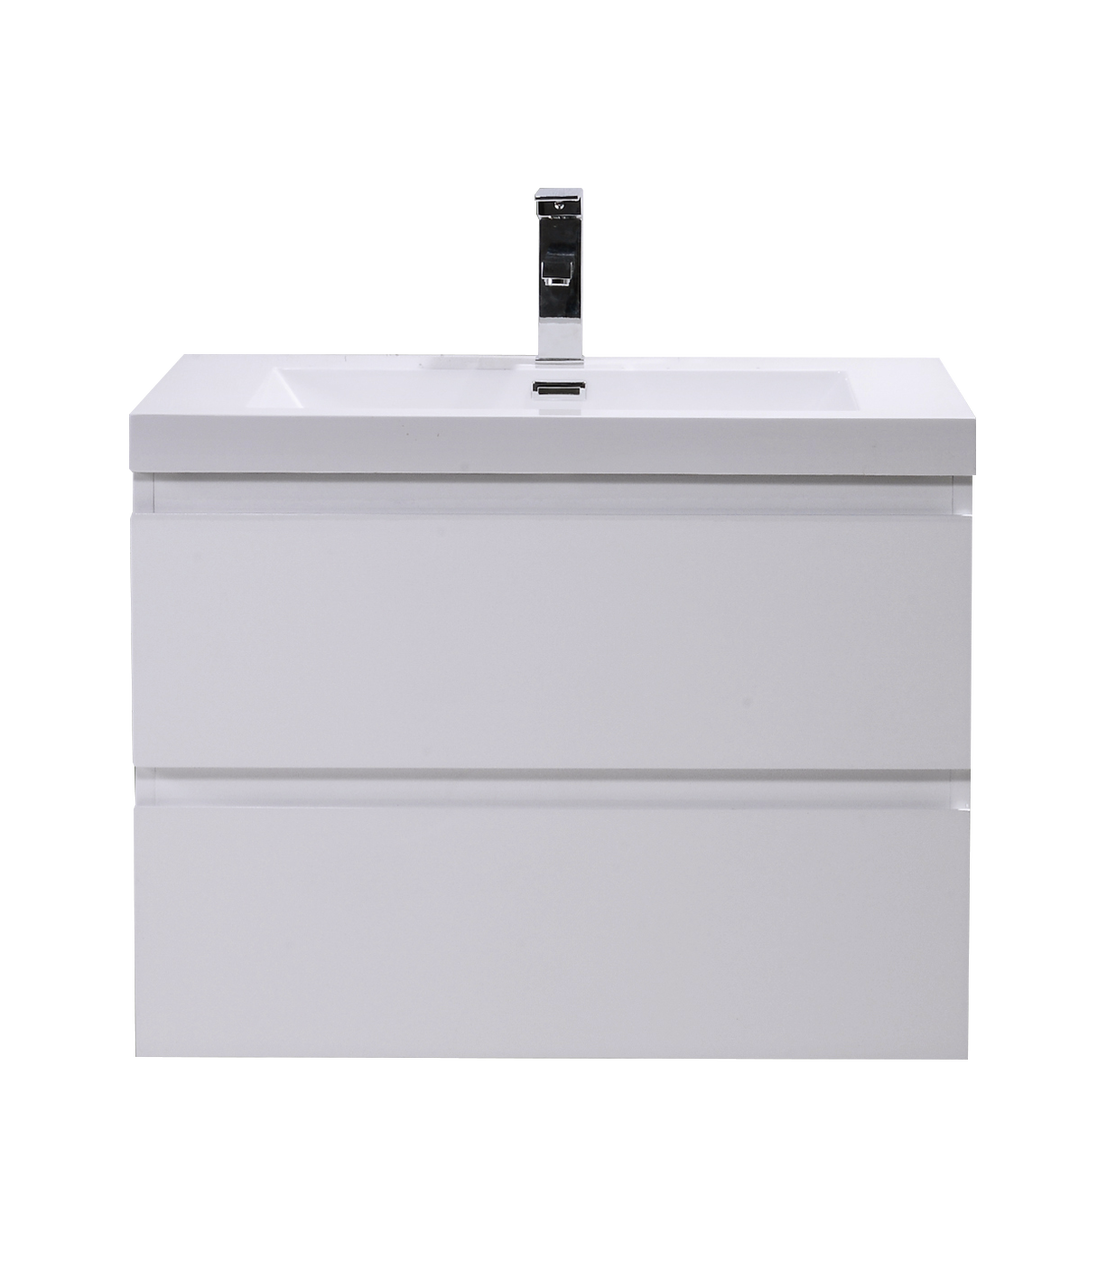 Moreno Mob 30 High Gloss White Wall Mounted Modern Bathroom Vanity With Reeinforced Acrylic Sink Los Angeles Vanity